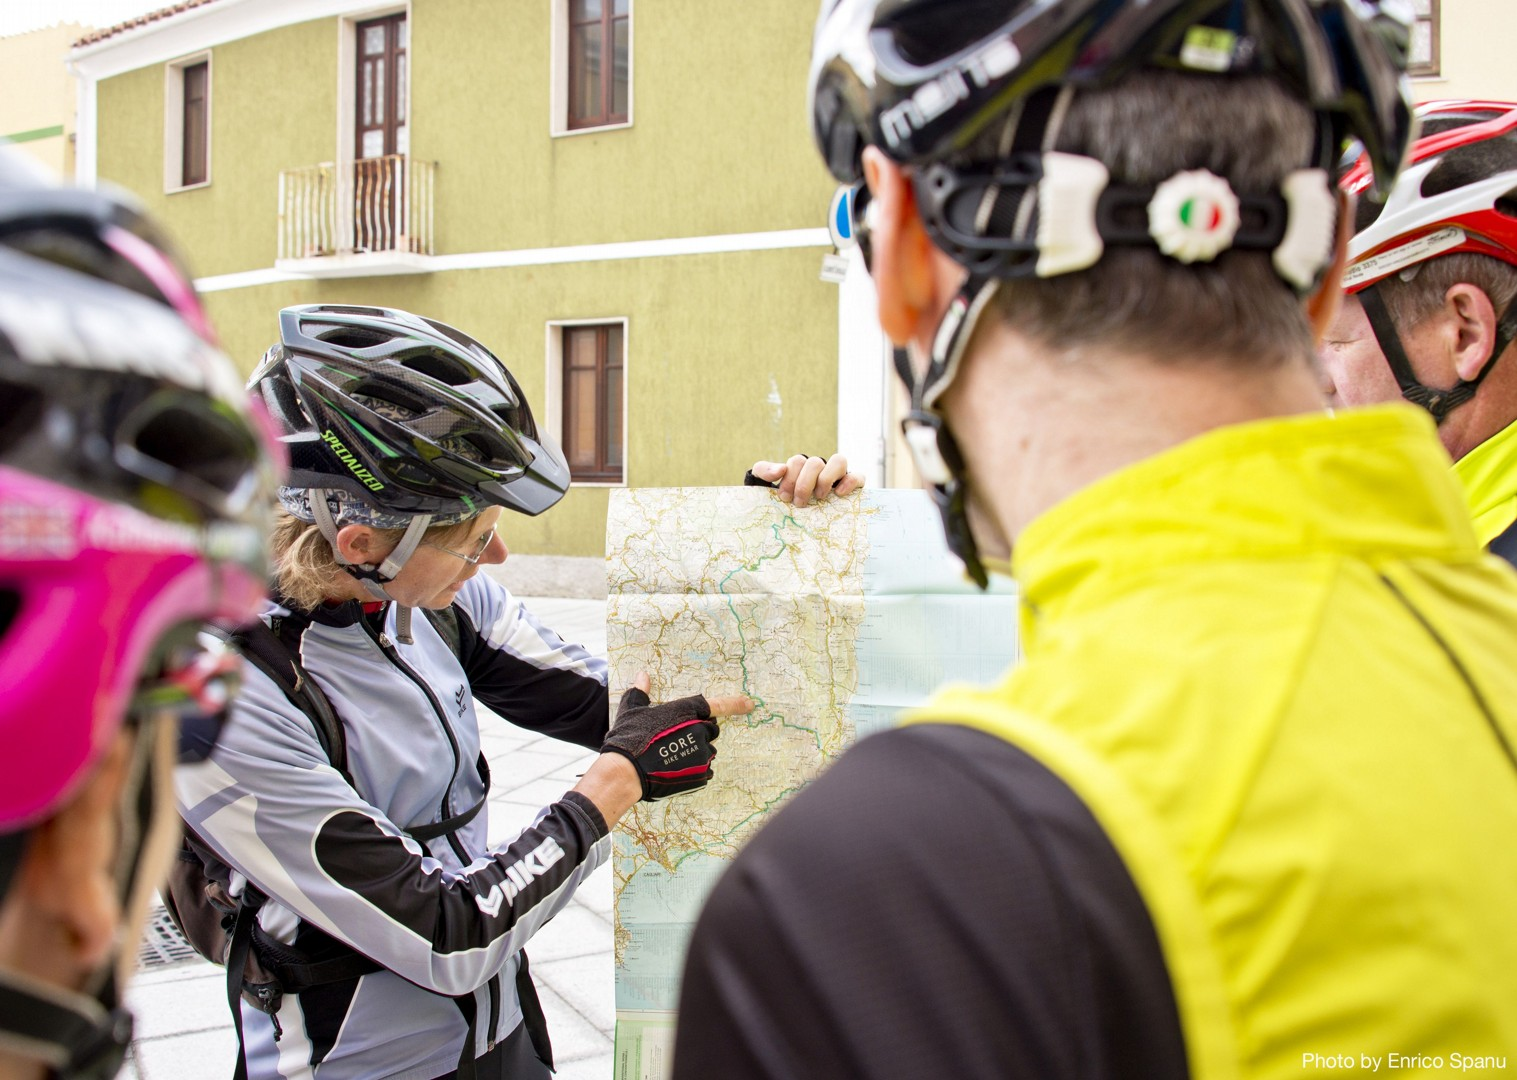 Guided-Road-Cycling-Holiday-Sardinia-Sardinian-Mountains.jpg - Italy - Sardinia - Mountain Explorer - Guided Road Cycling Holiday - Road Cycling